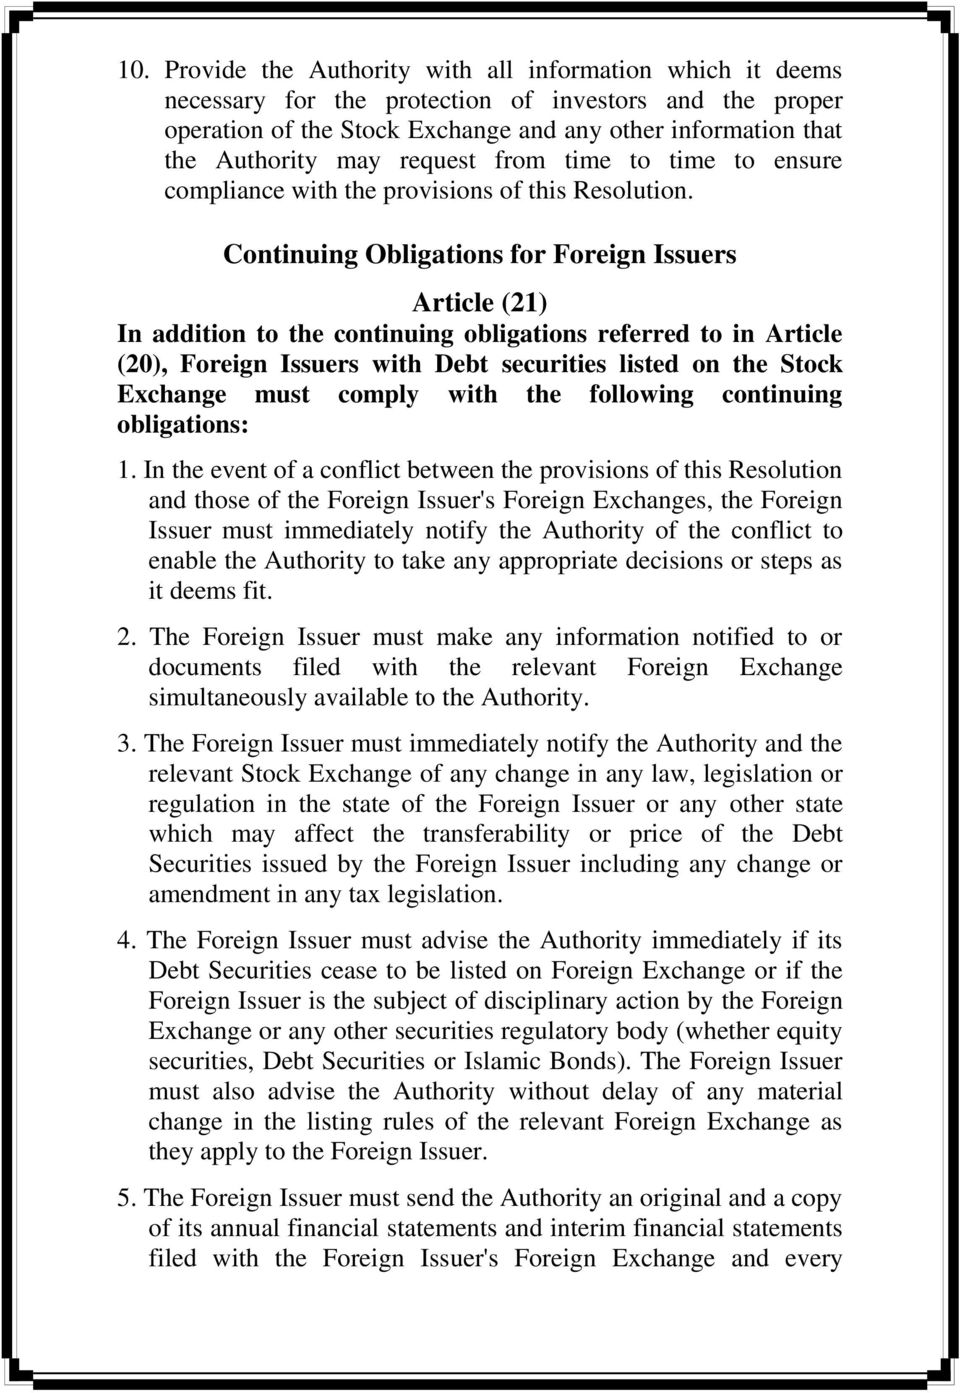 Continuing Obligations for Foreign Issuers Article (21) In addition to the continuing obligations referred to in Article (20), Foreign Issuers with Debt securities listed on the Stock Exchange must